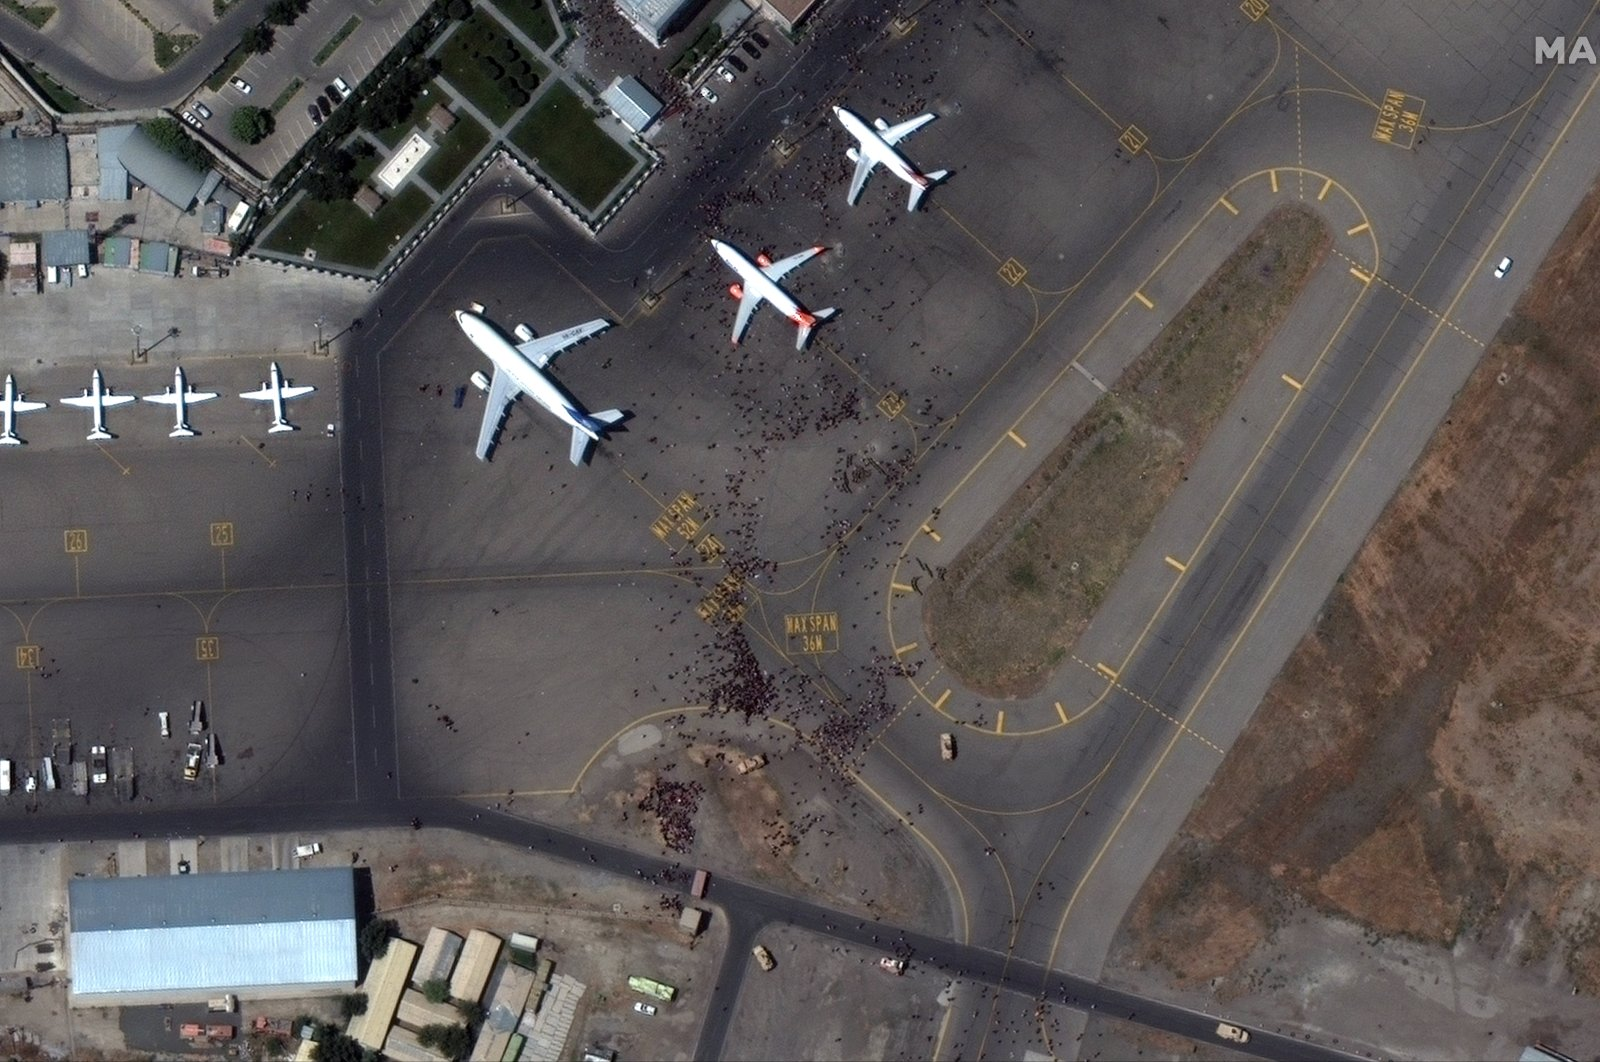 A handout satellite image made available by Maxar Technologies shows crowds on the tarmac of Kabul Hamid Karzai International Airport, Kabul, Afghanistan, Aug. 16, 2021. (Satellite image / 2021 Maxar Technologies via EPA)